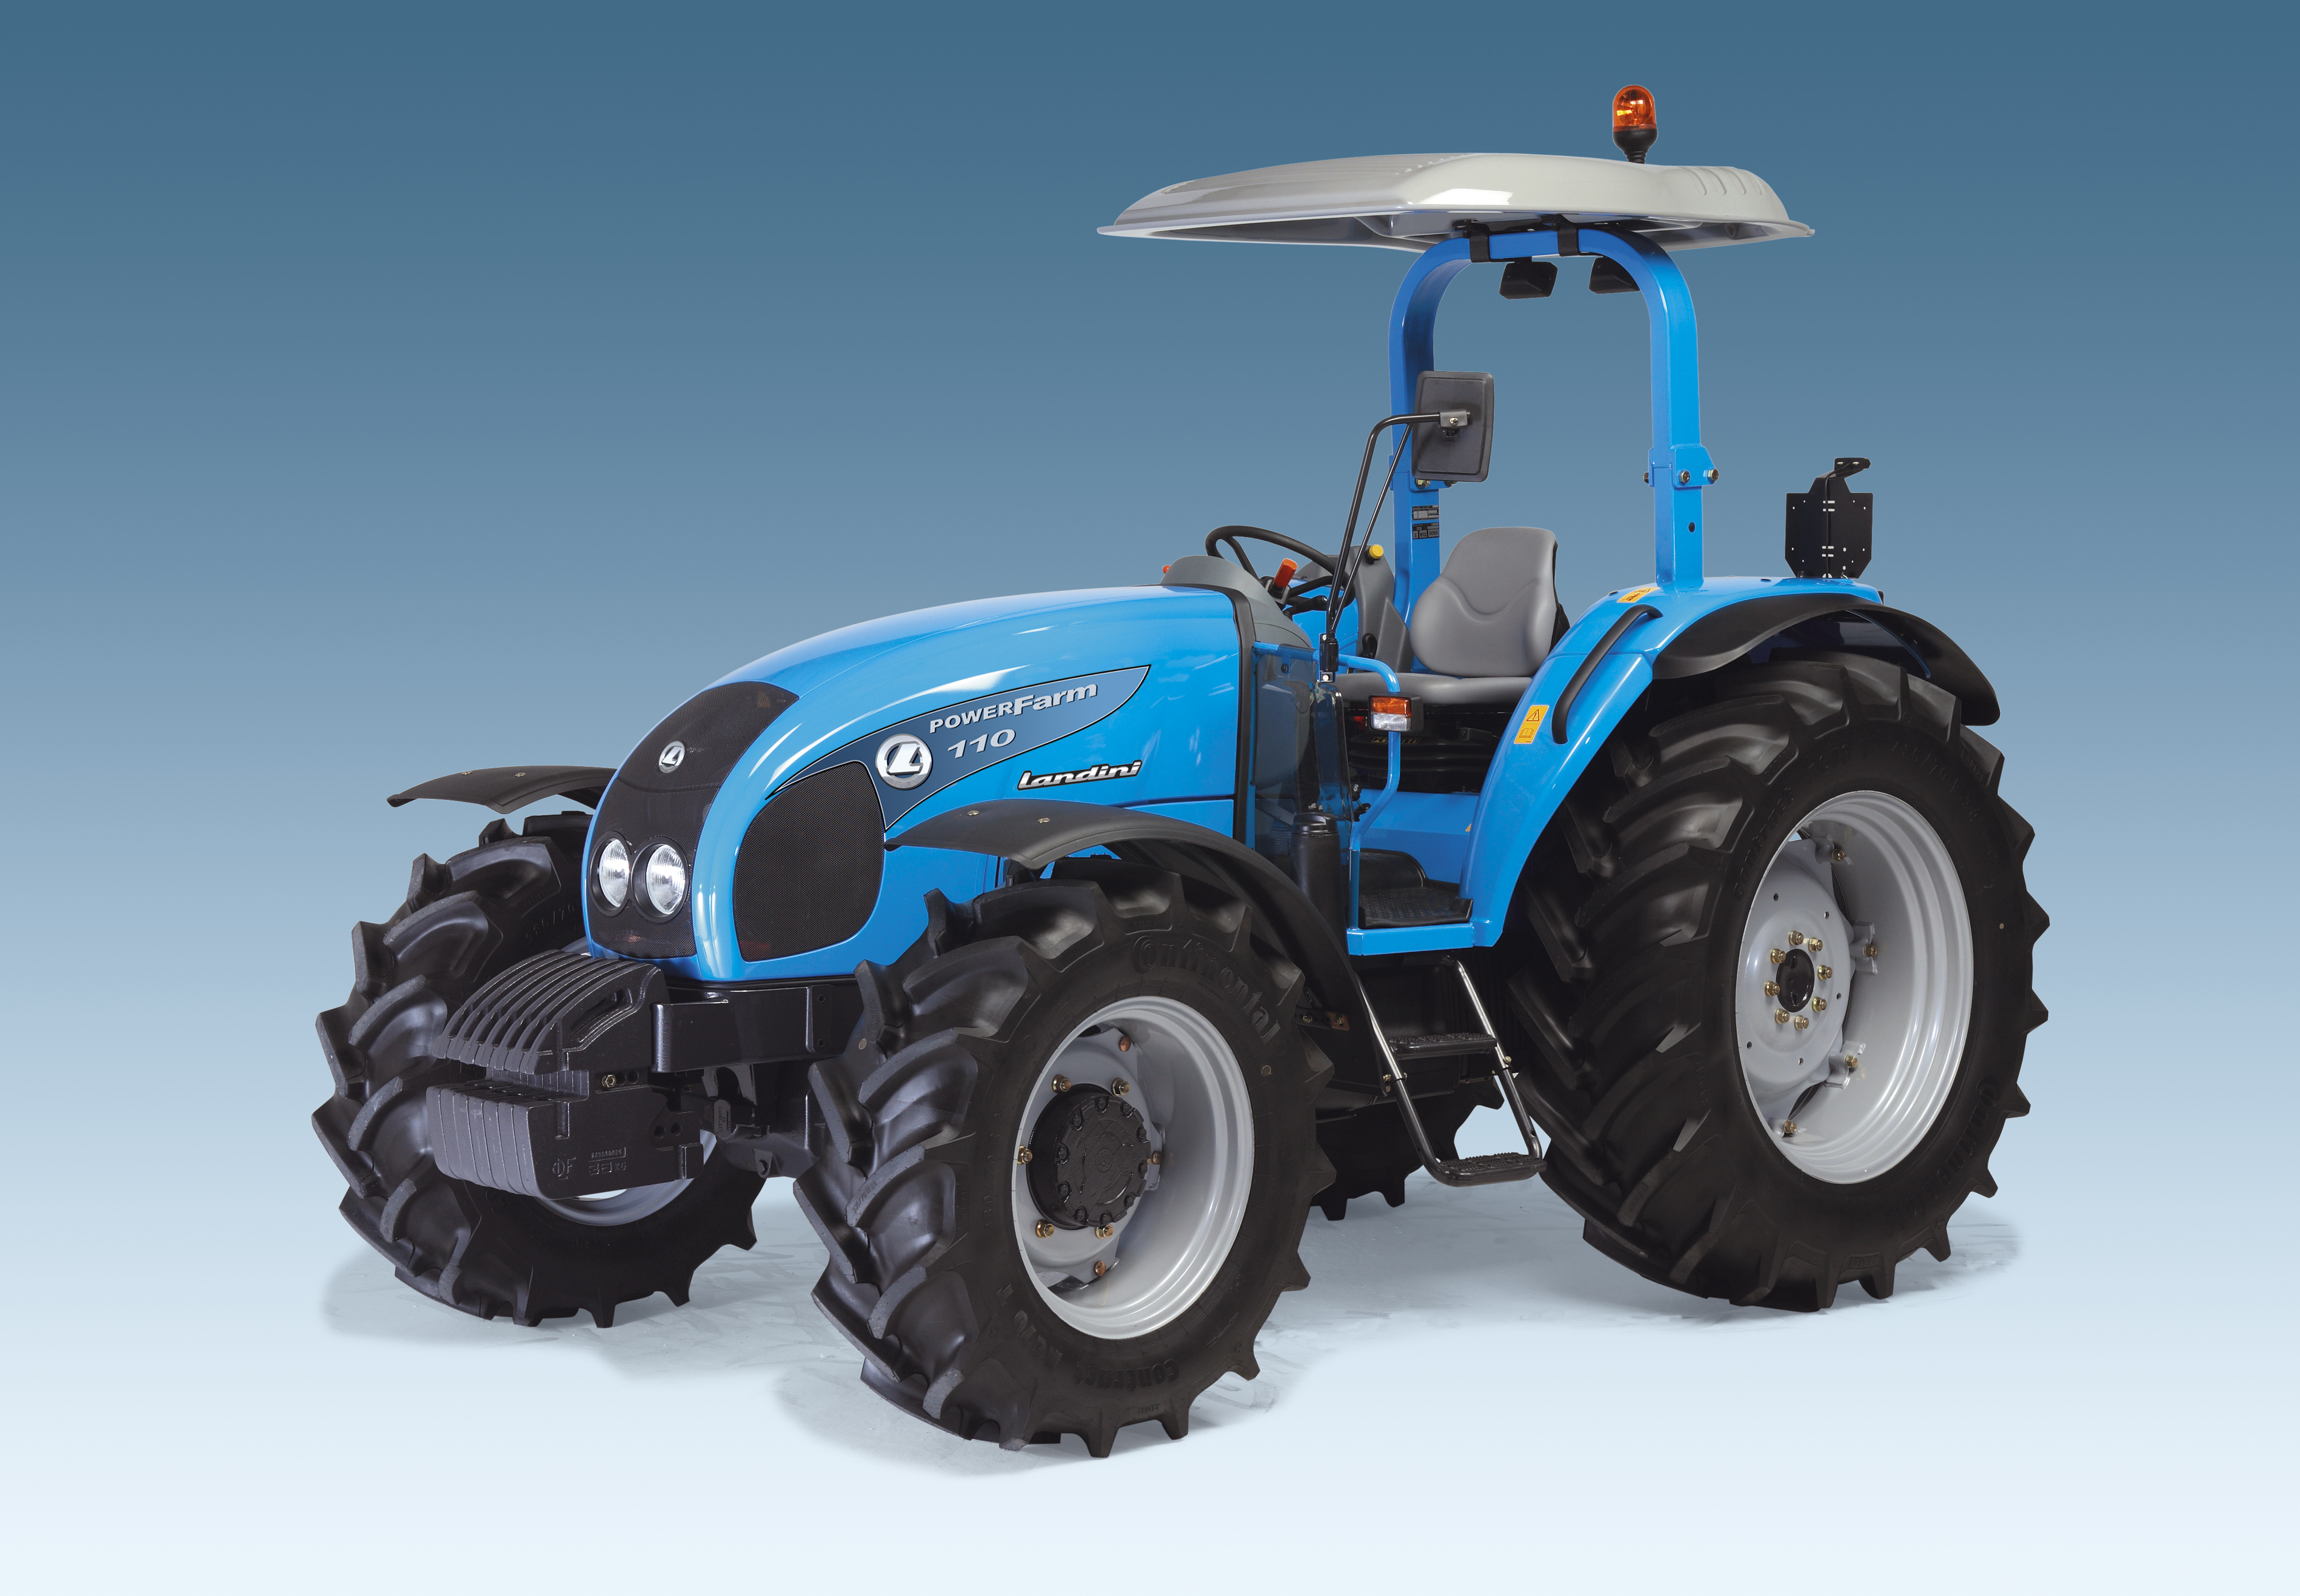 Landini powerfarm photo - 3